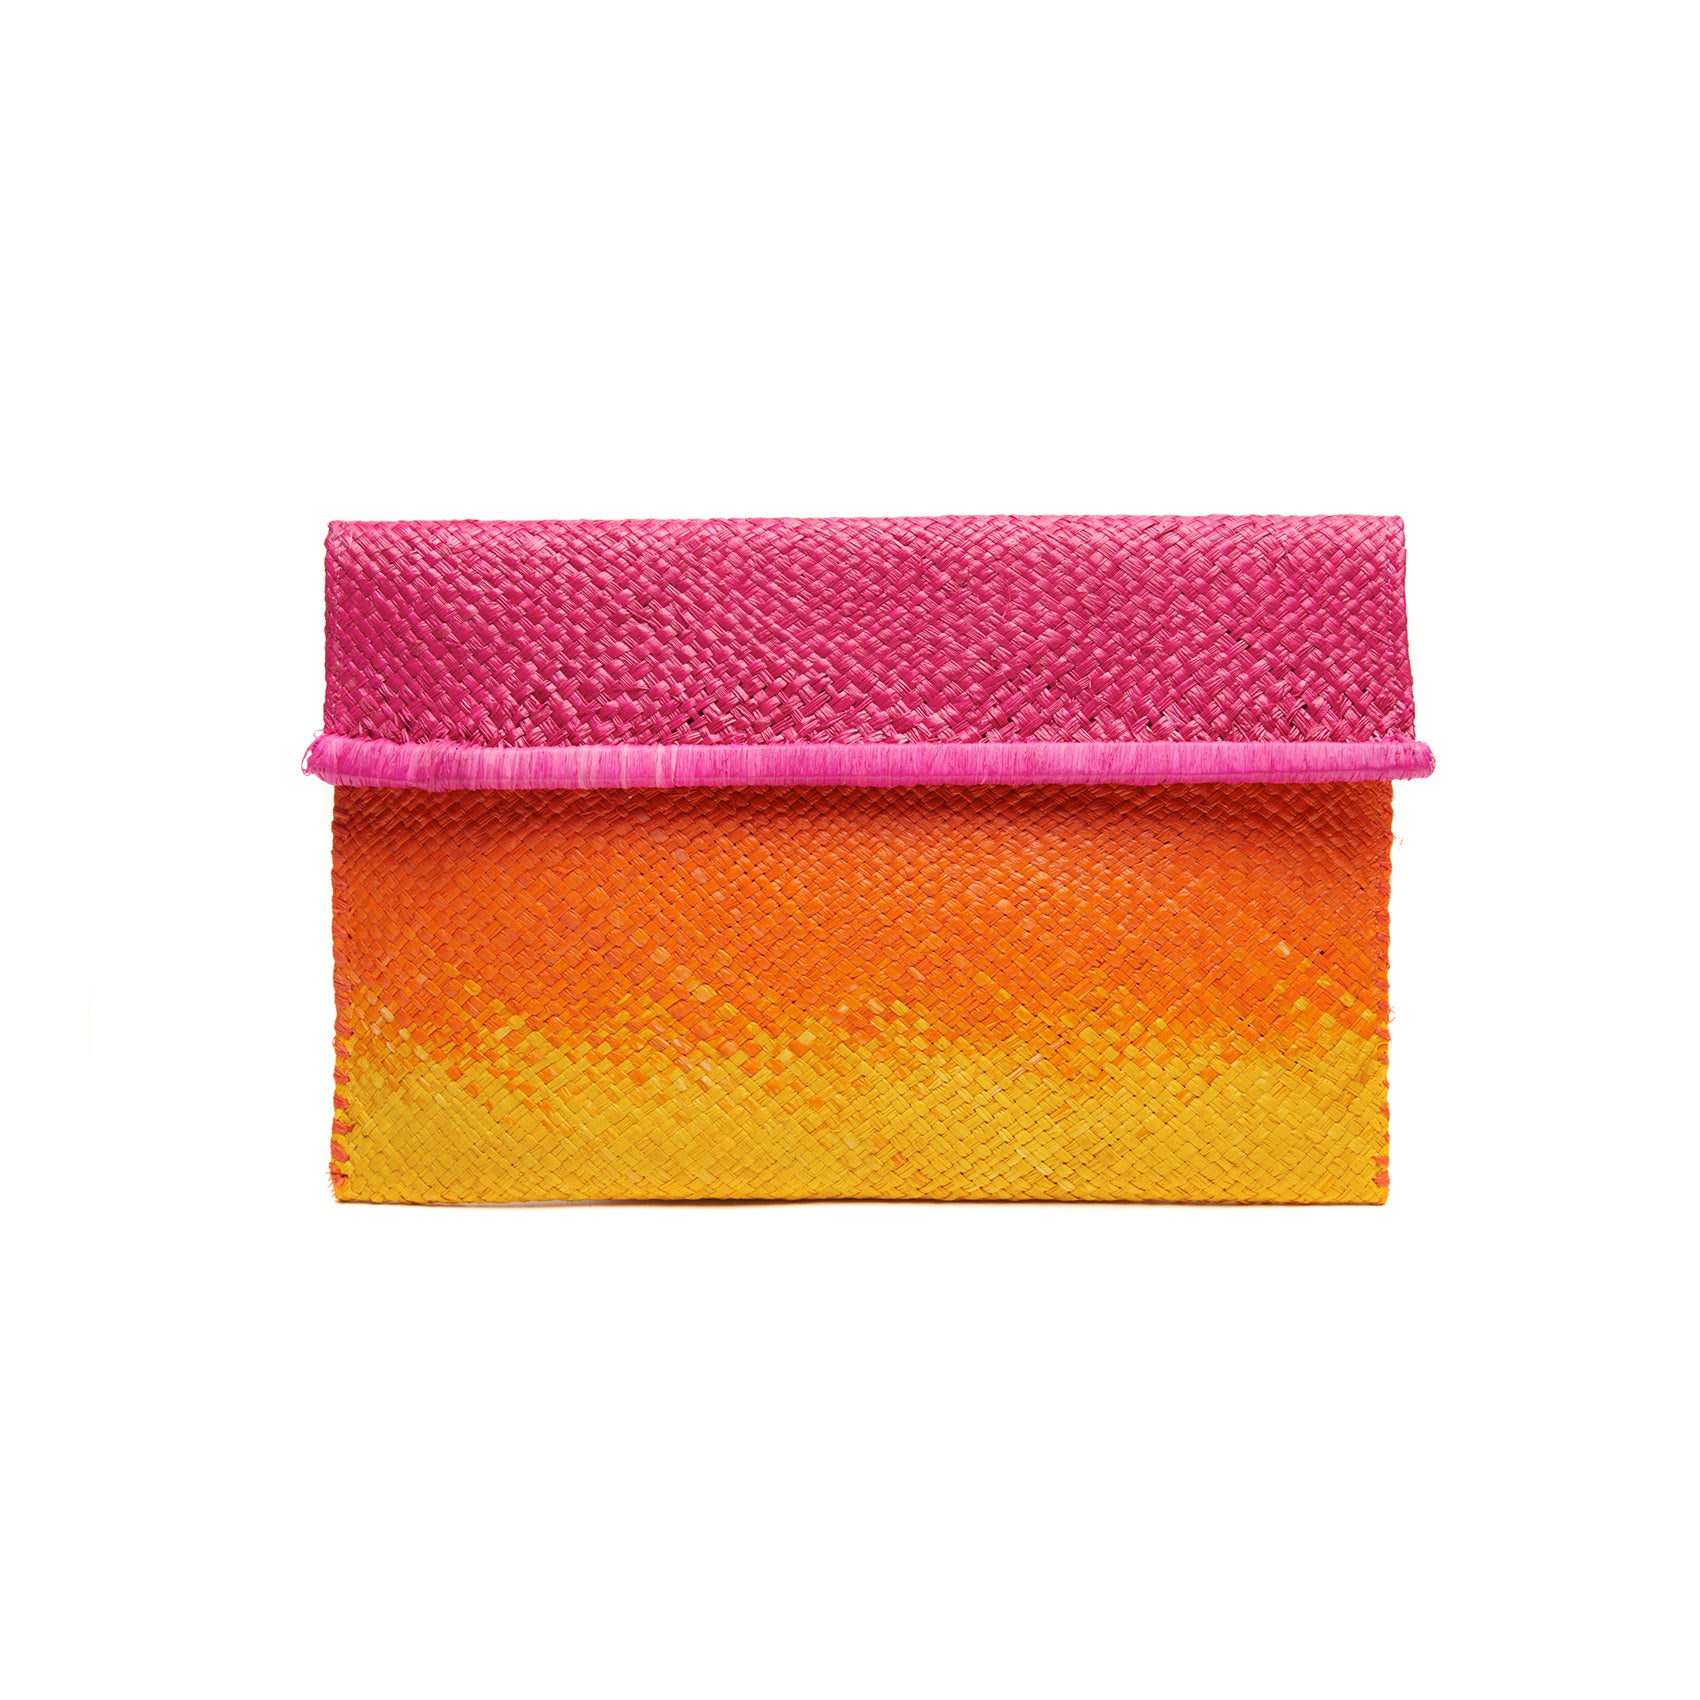 Ariel Pink Straw Clutch Bag